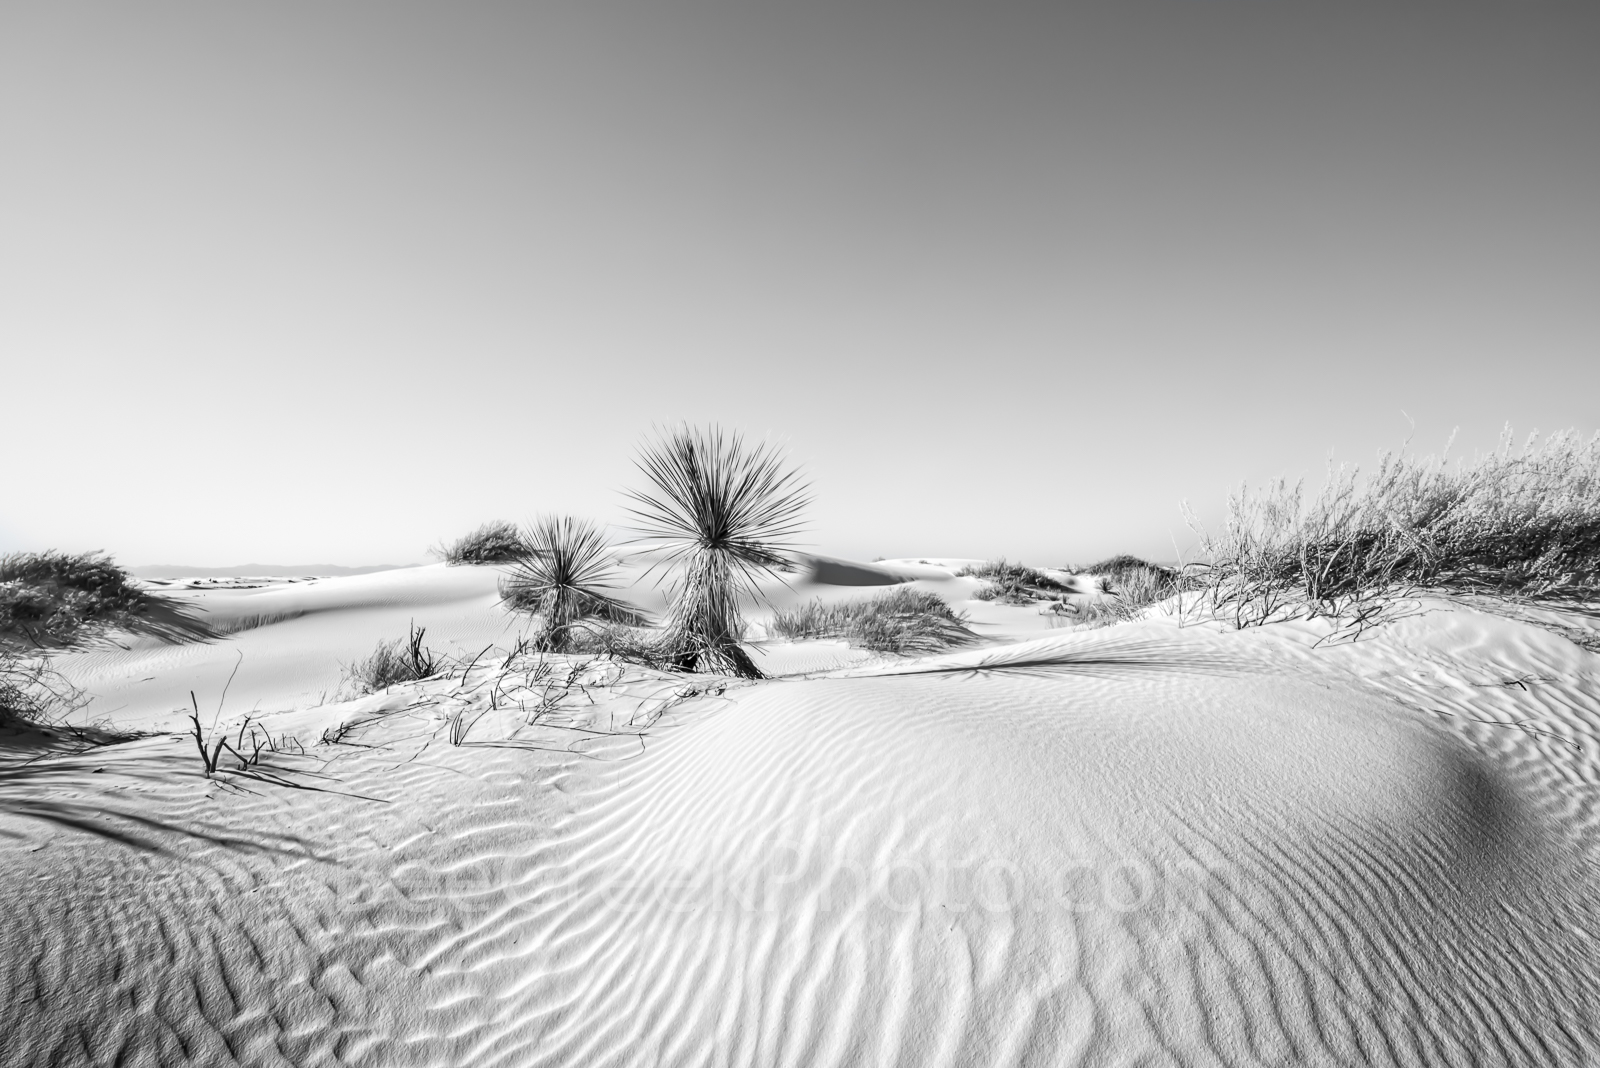 White Sands Dunes, New Mexico, Alamagorda nm, sand dunes, desert landscape, image of new mexico, pictures of sand dunes, southwestern, us, yuccas, soft, white, gypsum, blue skys, landscape, scenic, de, photo